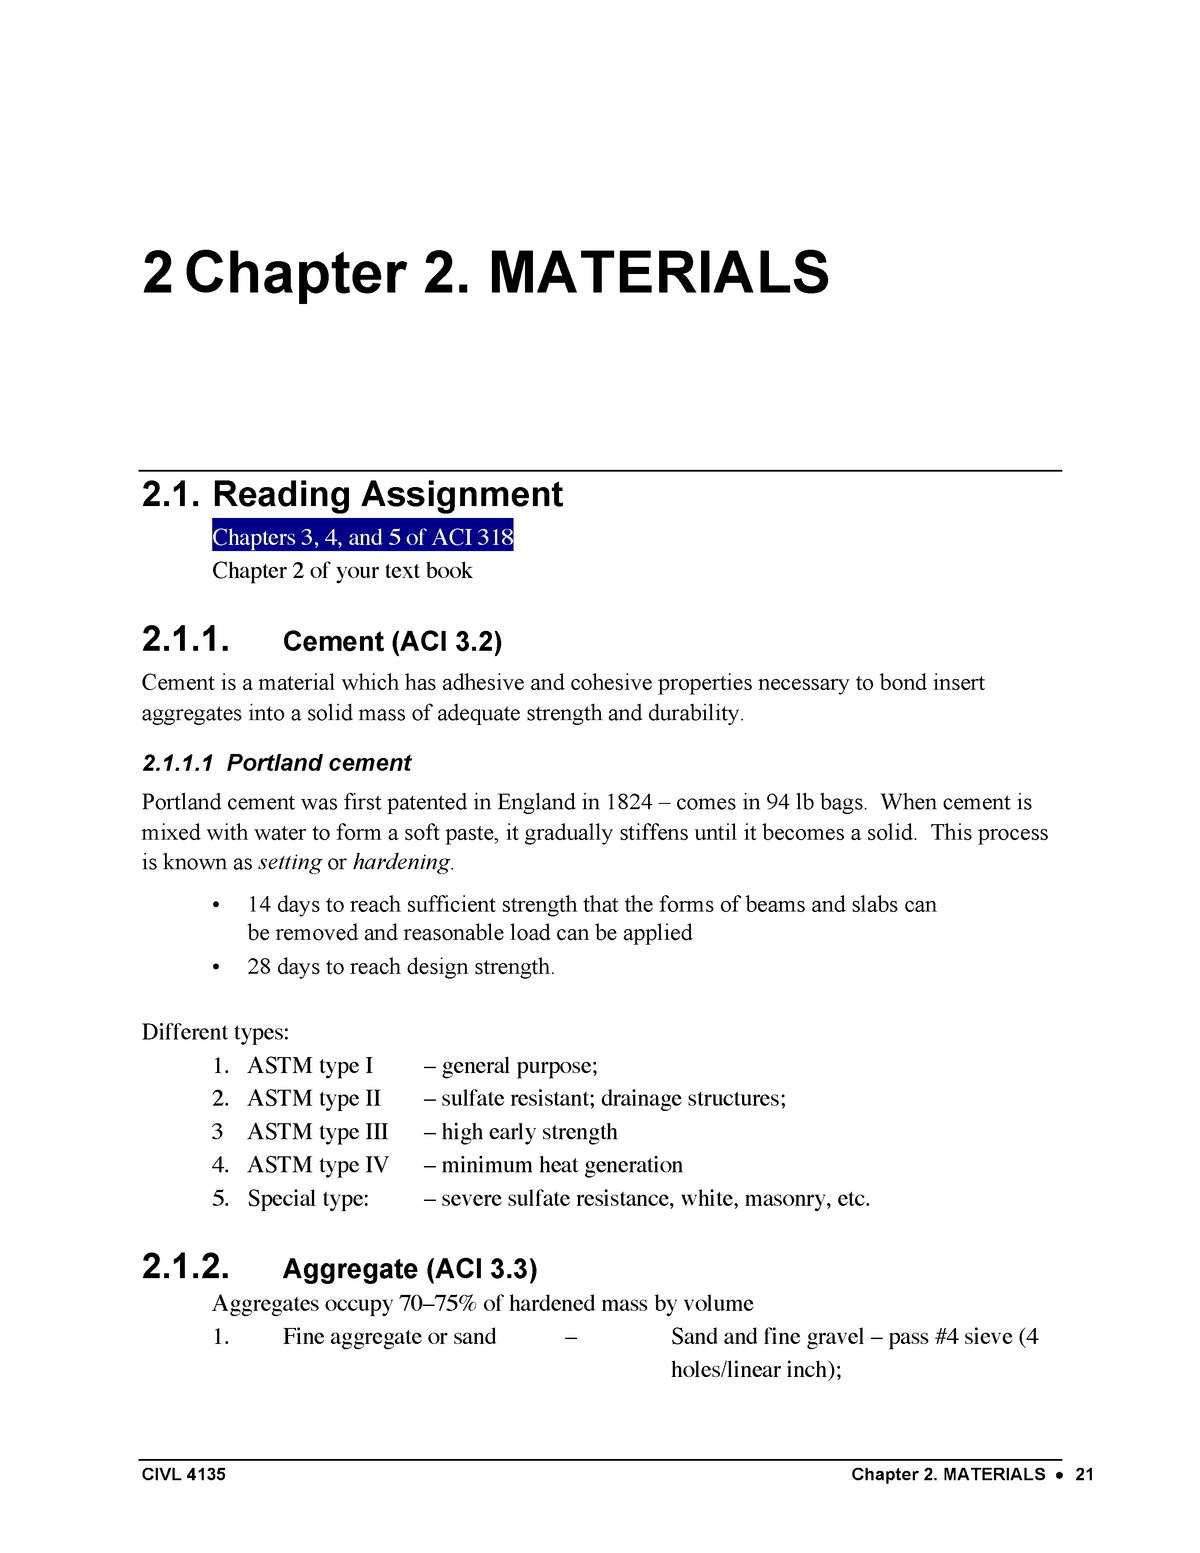 Materials chapter 2 - CIVL 4135 Reinforced Concrete Design